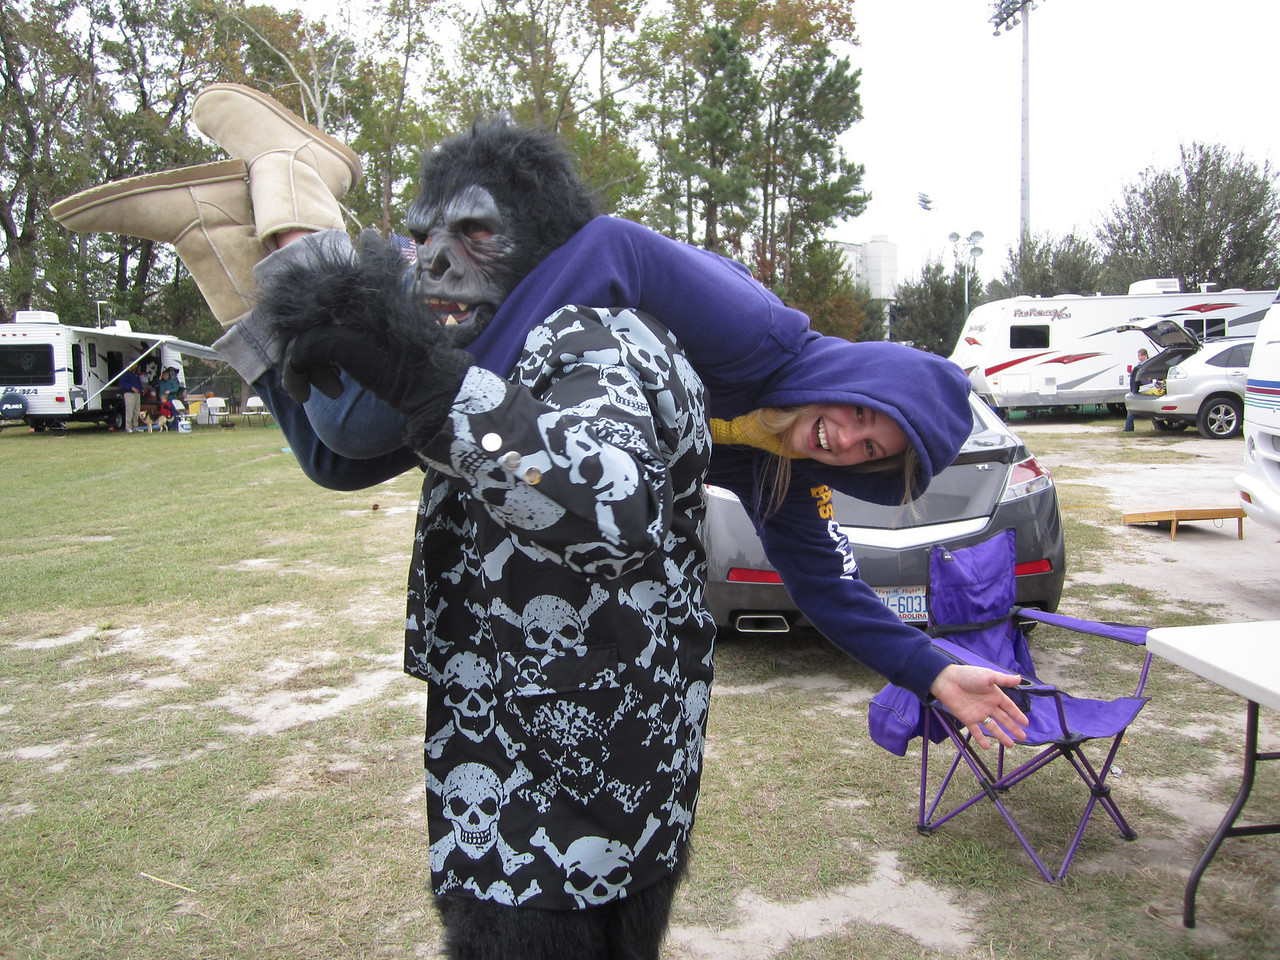 10/29/2011 ECU vs. Tulane (Homecoming) - Preston Hubbard, Jess Dove